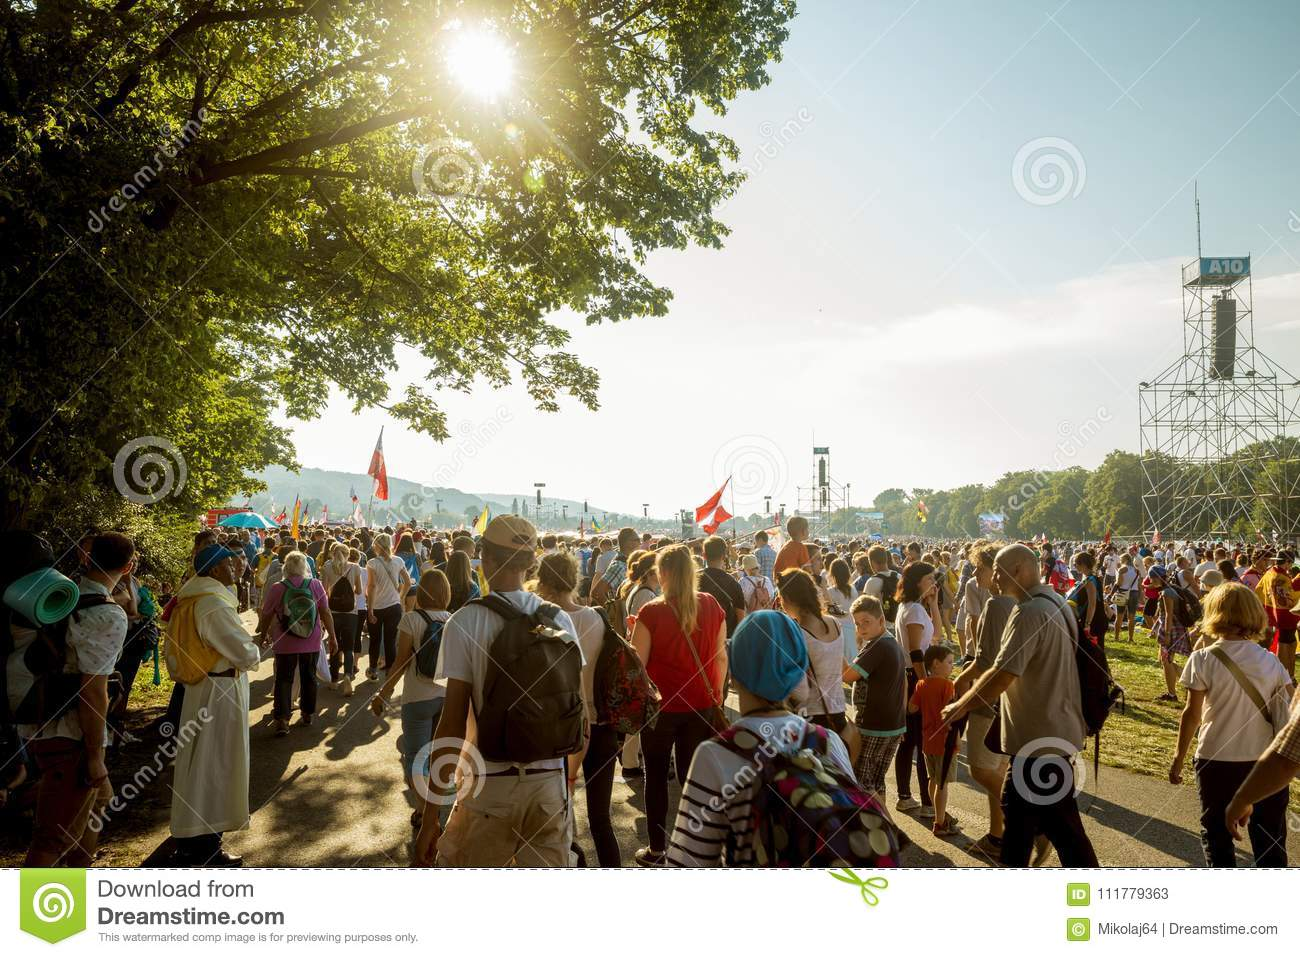 World youth day in Krakow, Poland